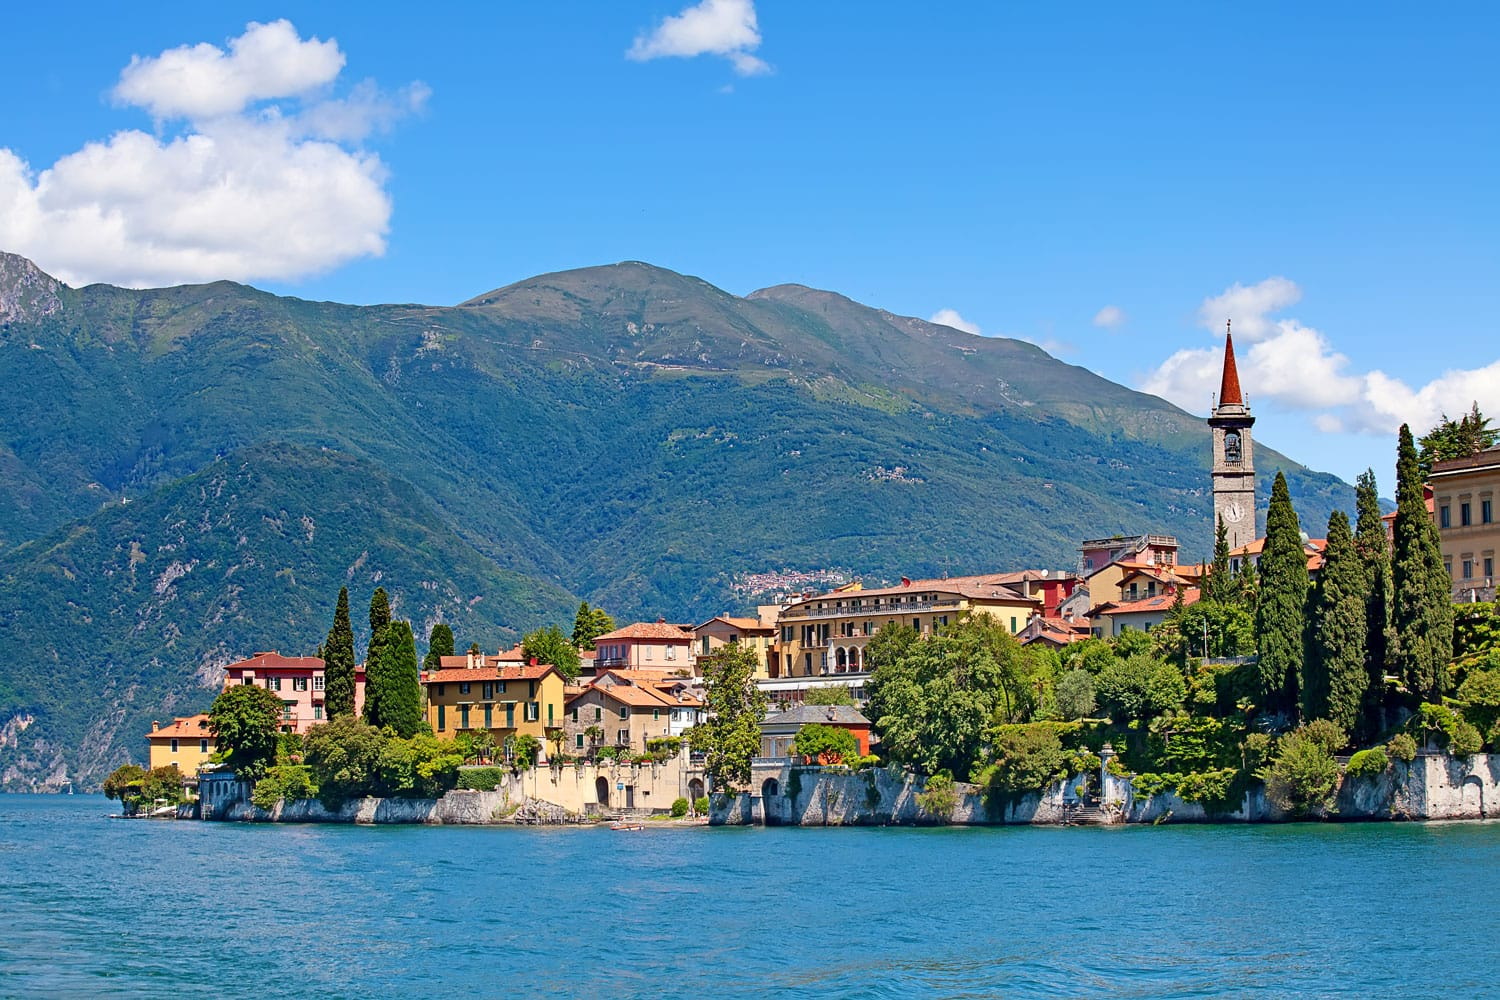 Panoramic view of Varenna town on Lake Como, Italy